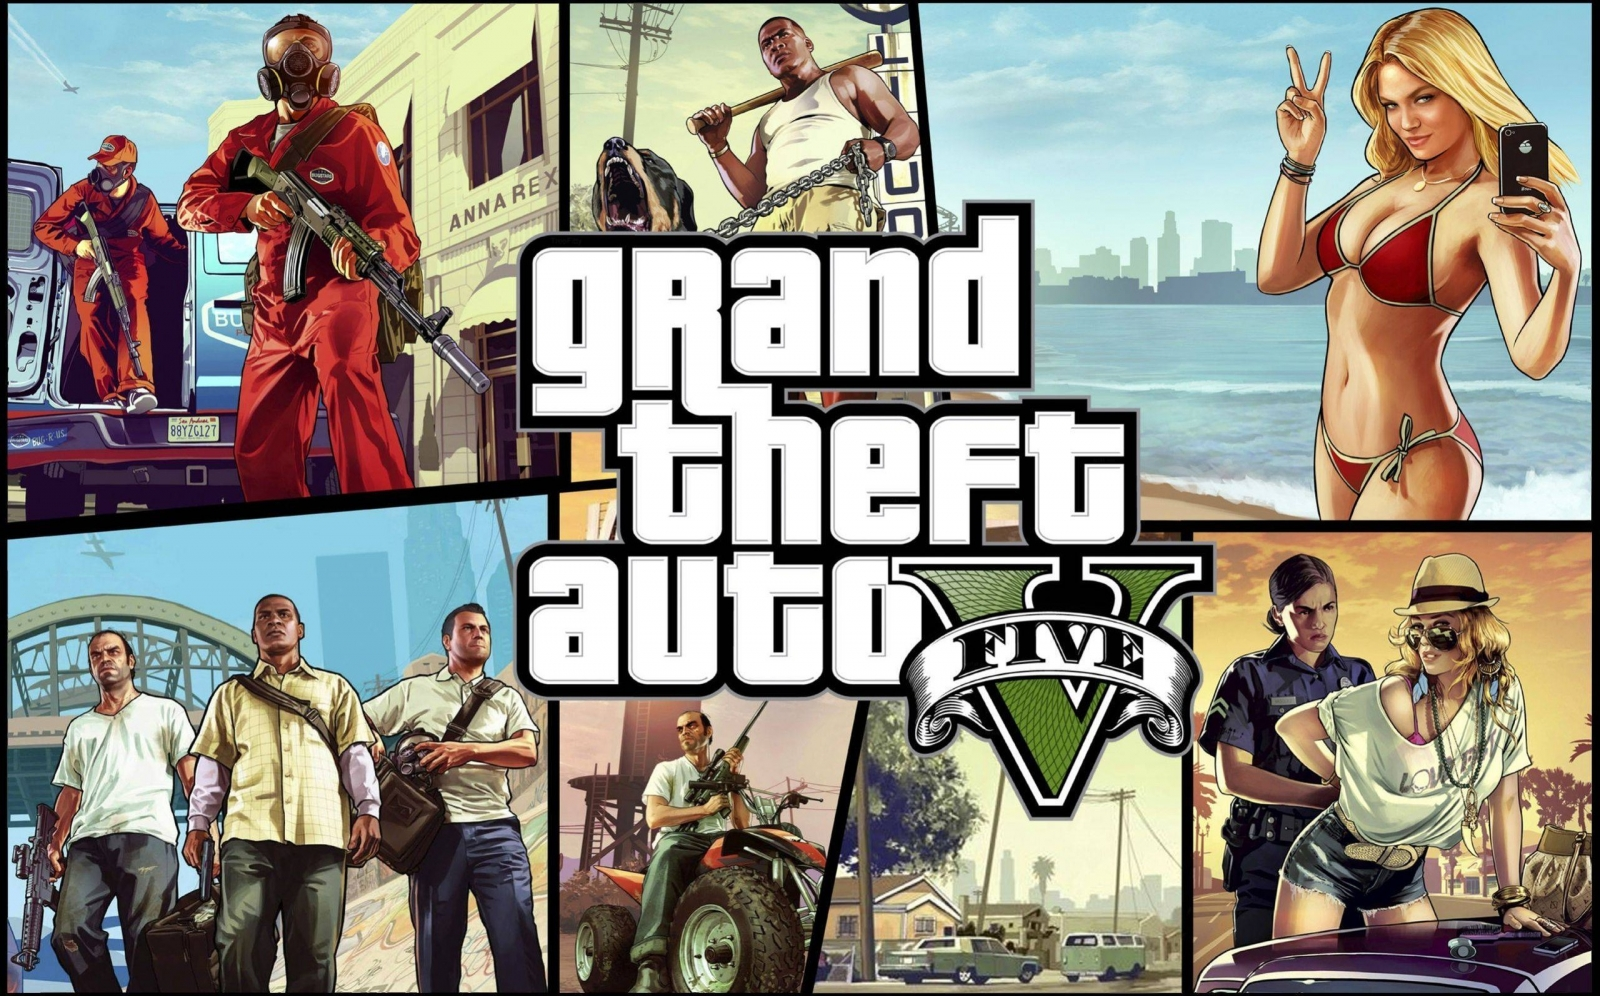 GTA 5 Online 1.16 Update Confirmed By Rockstar